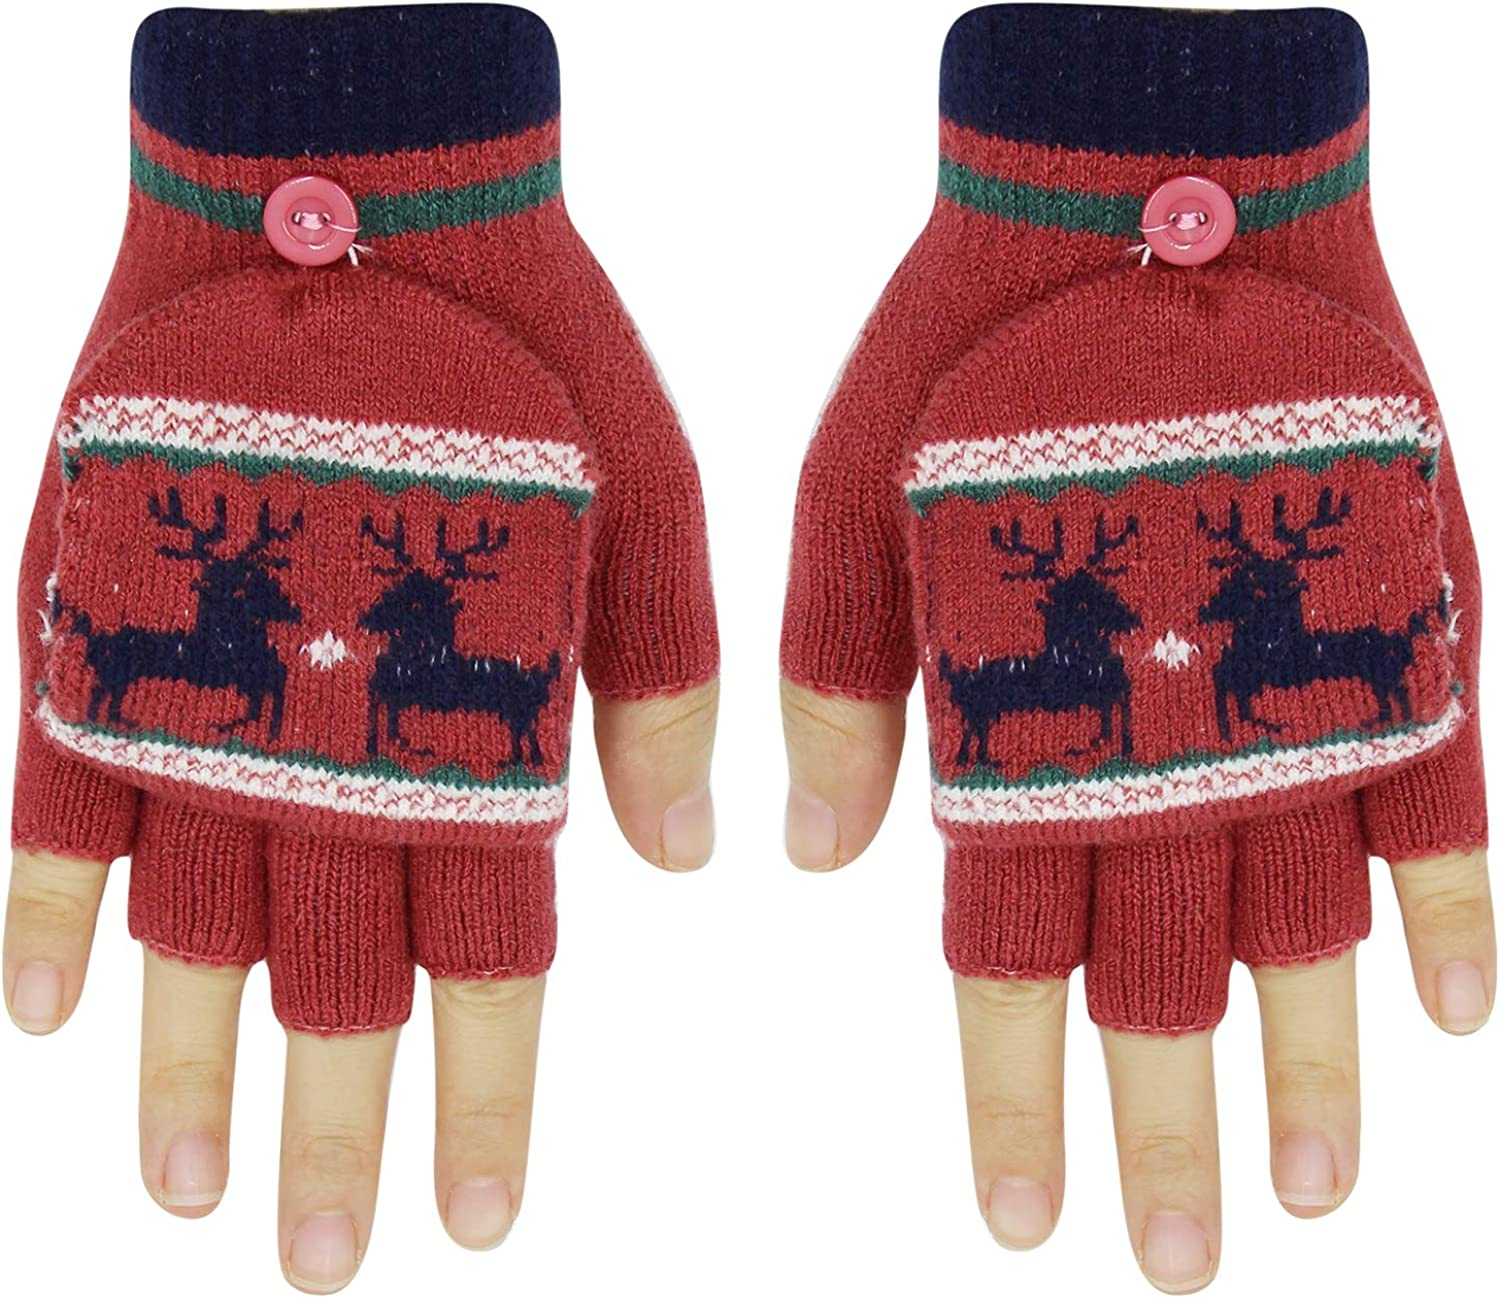 Cute Deer Winter Knit Flap Cover Gloves Stretchy Warm Convertible Mittens Gift for Women Men Couples